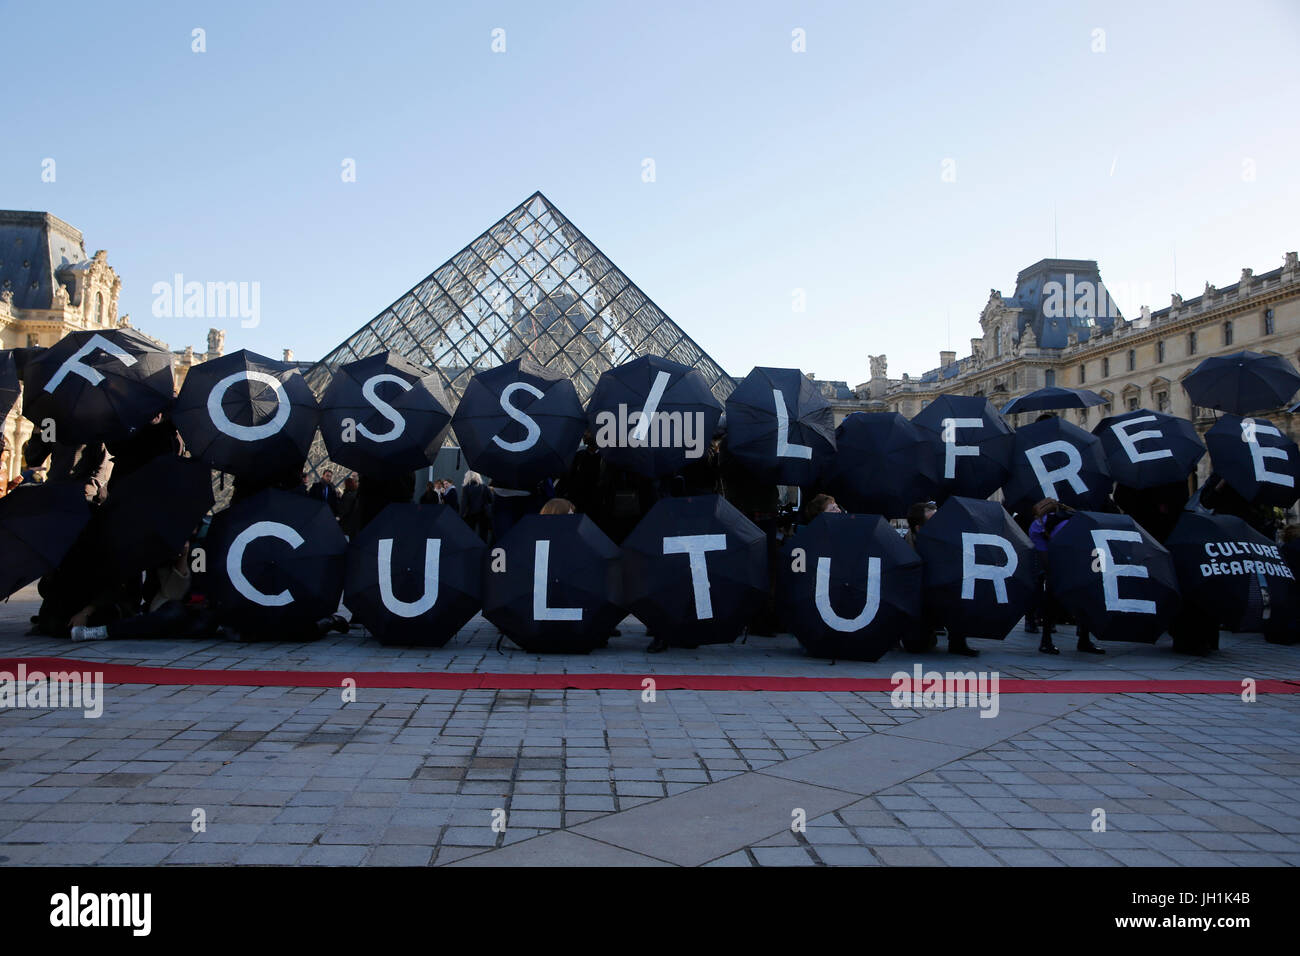 Demonstration outside the Louvre museum during the COP 21 climate summit. France. - Stock Image